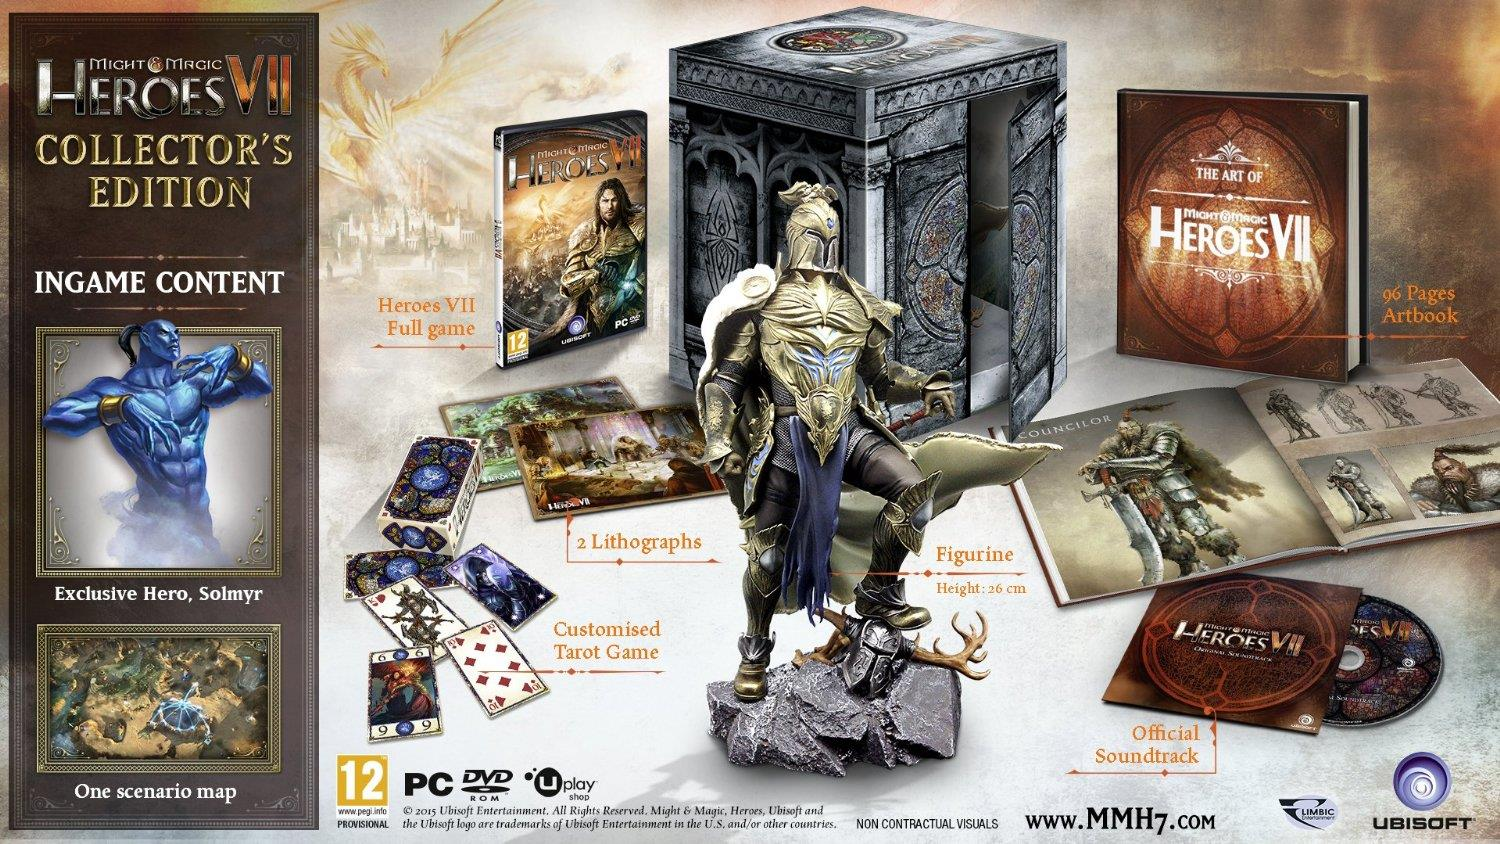 PC MIGHT & MAGIC HEROES VII COLLECTOR EDITION